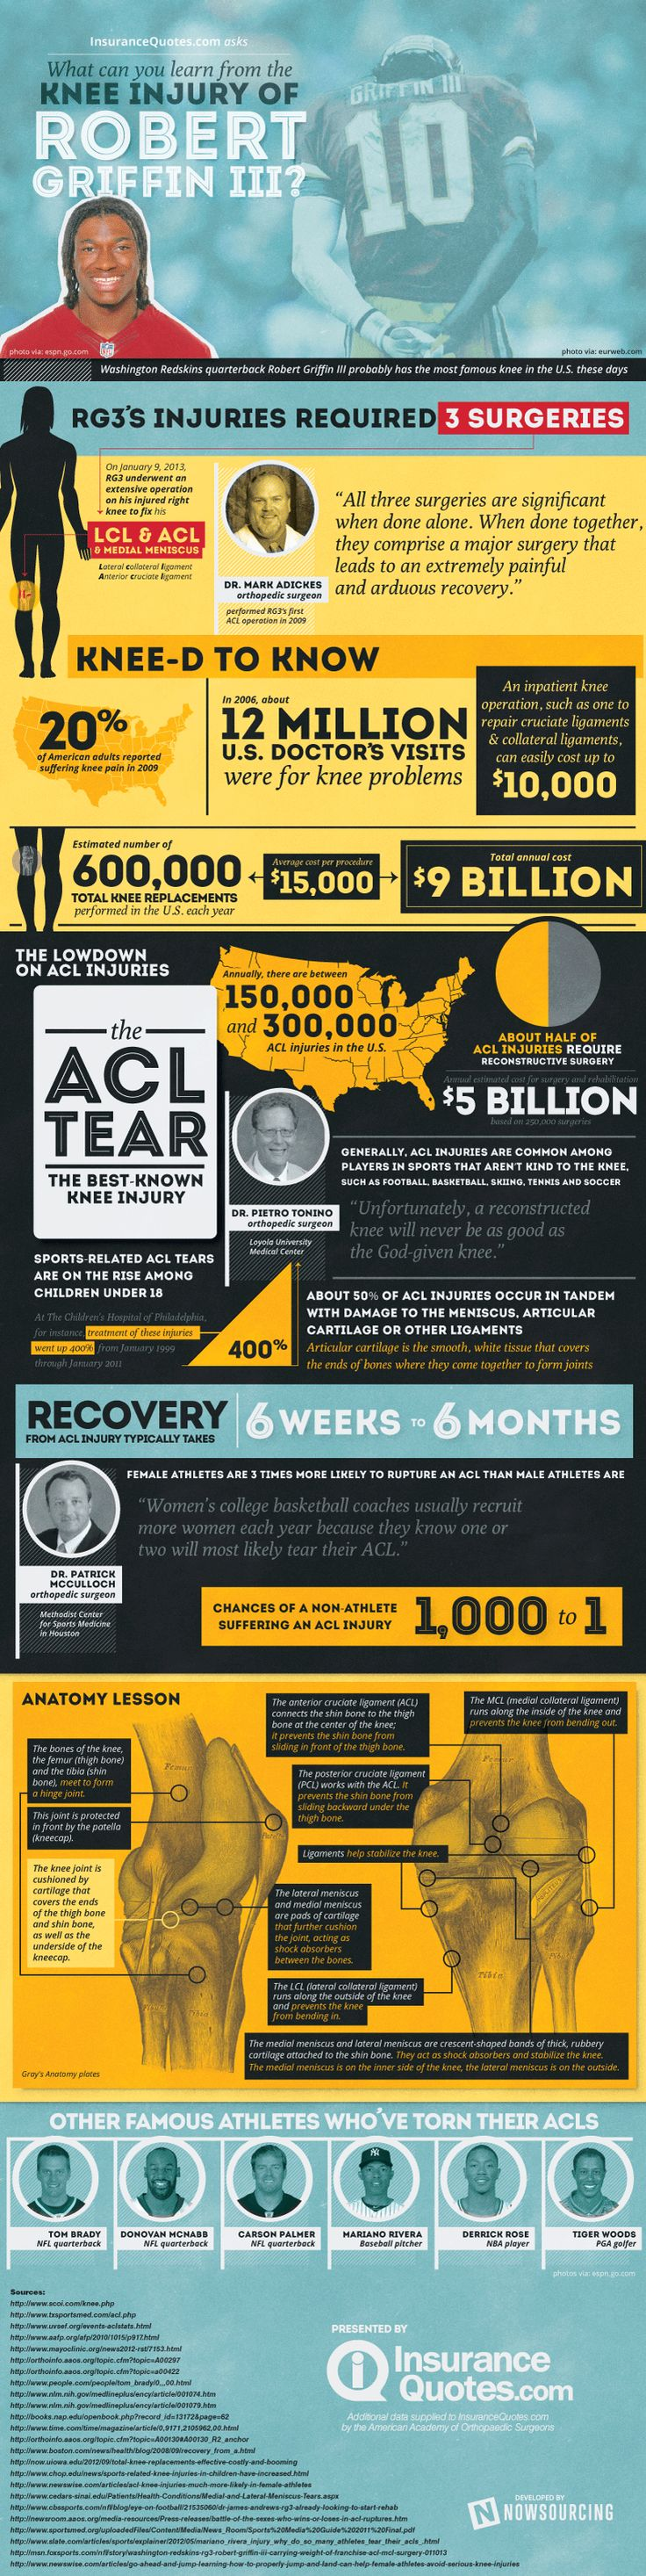 Infographic: Knee pain and treatment in the U.S. | InsuranceQuotes.com